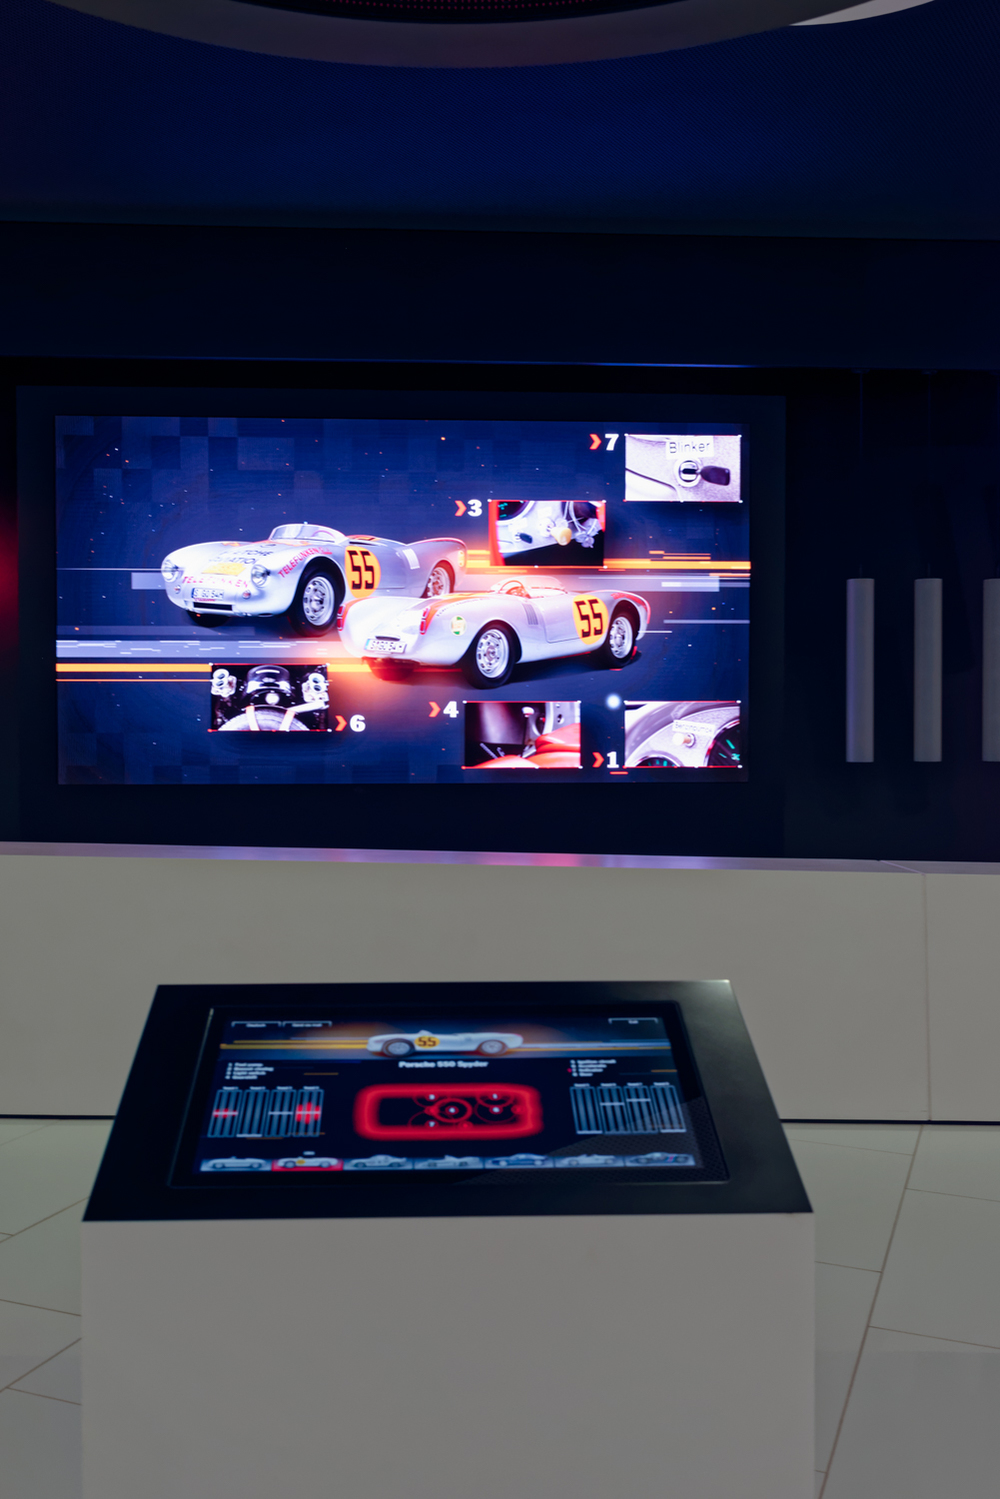 The new display to simulate the sounds of different pats of the Porsche.